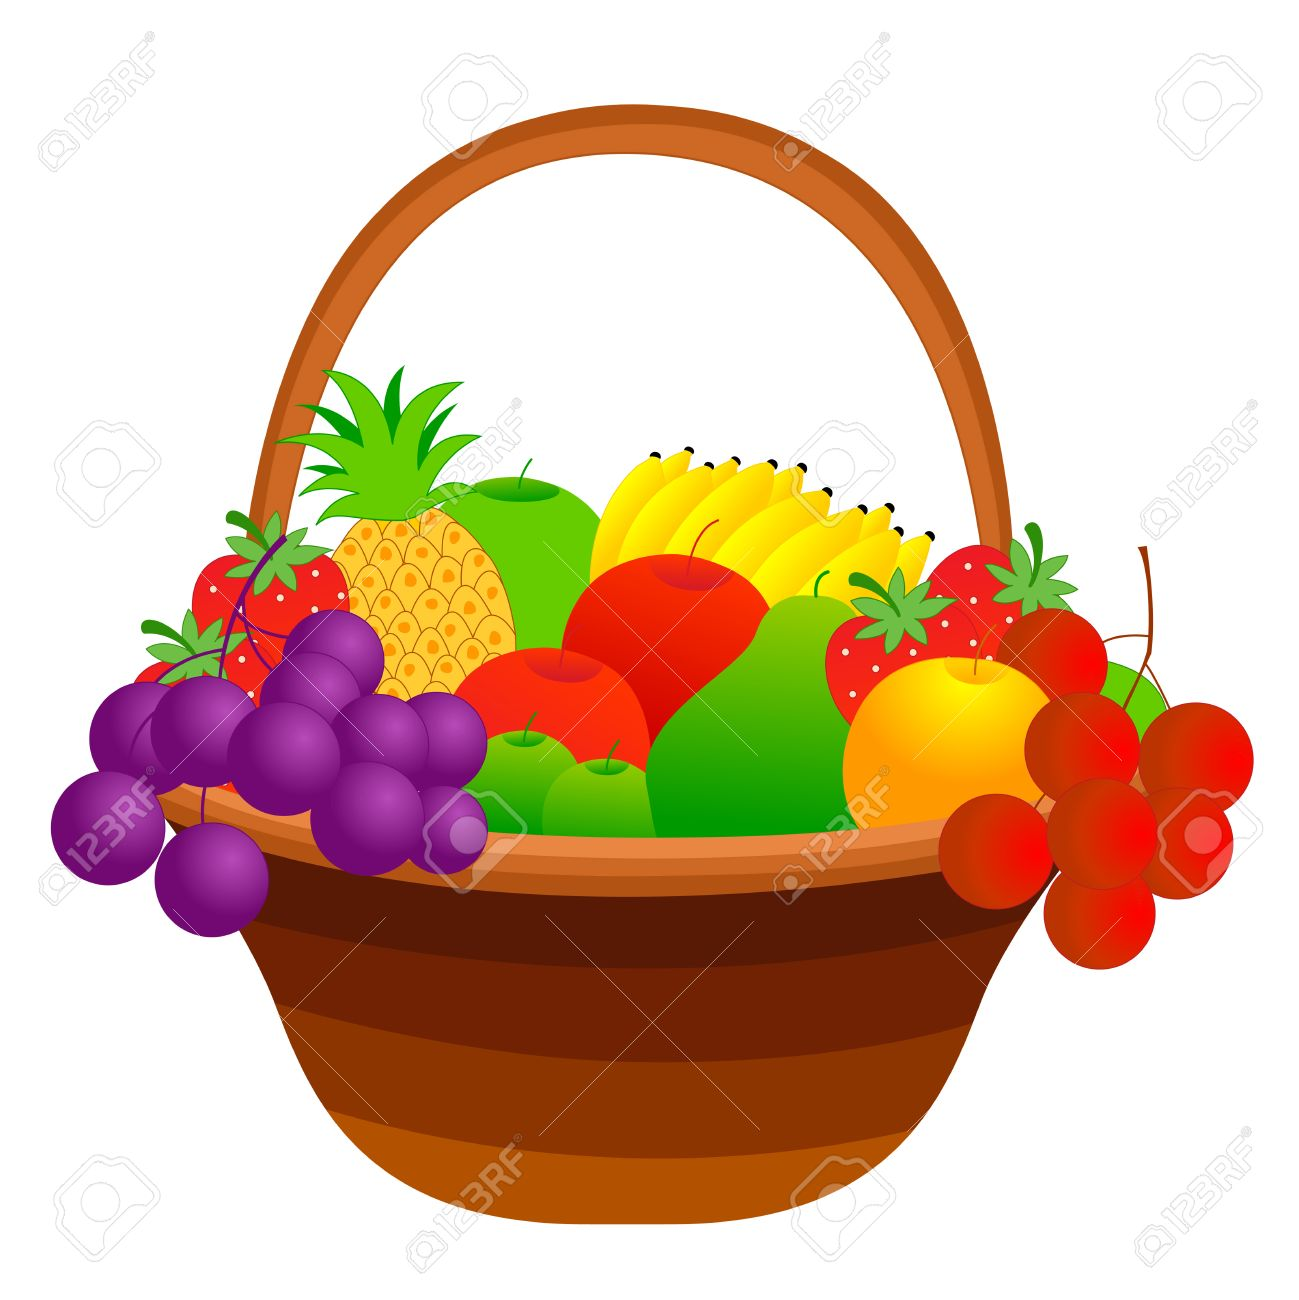 illustration of a fruit basket with mixed fruits including apple rh 123rf com fruit basket clipart black and white empty fruit basket clipart black and white